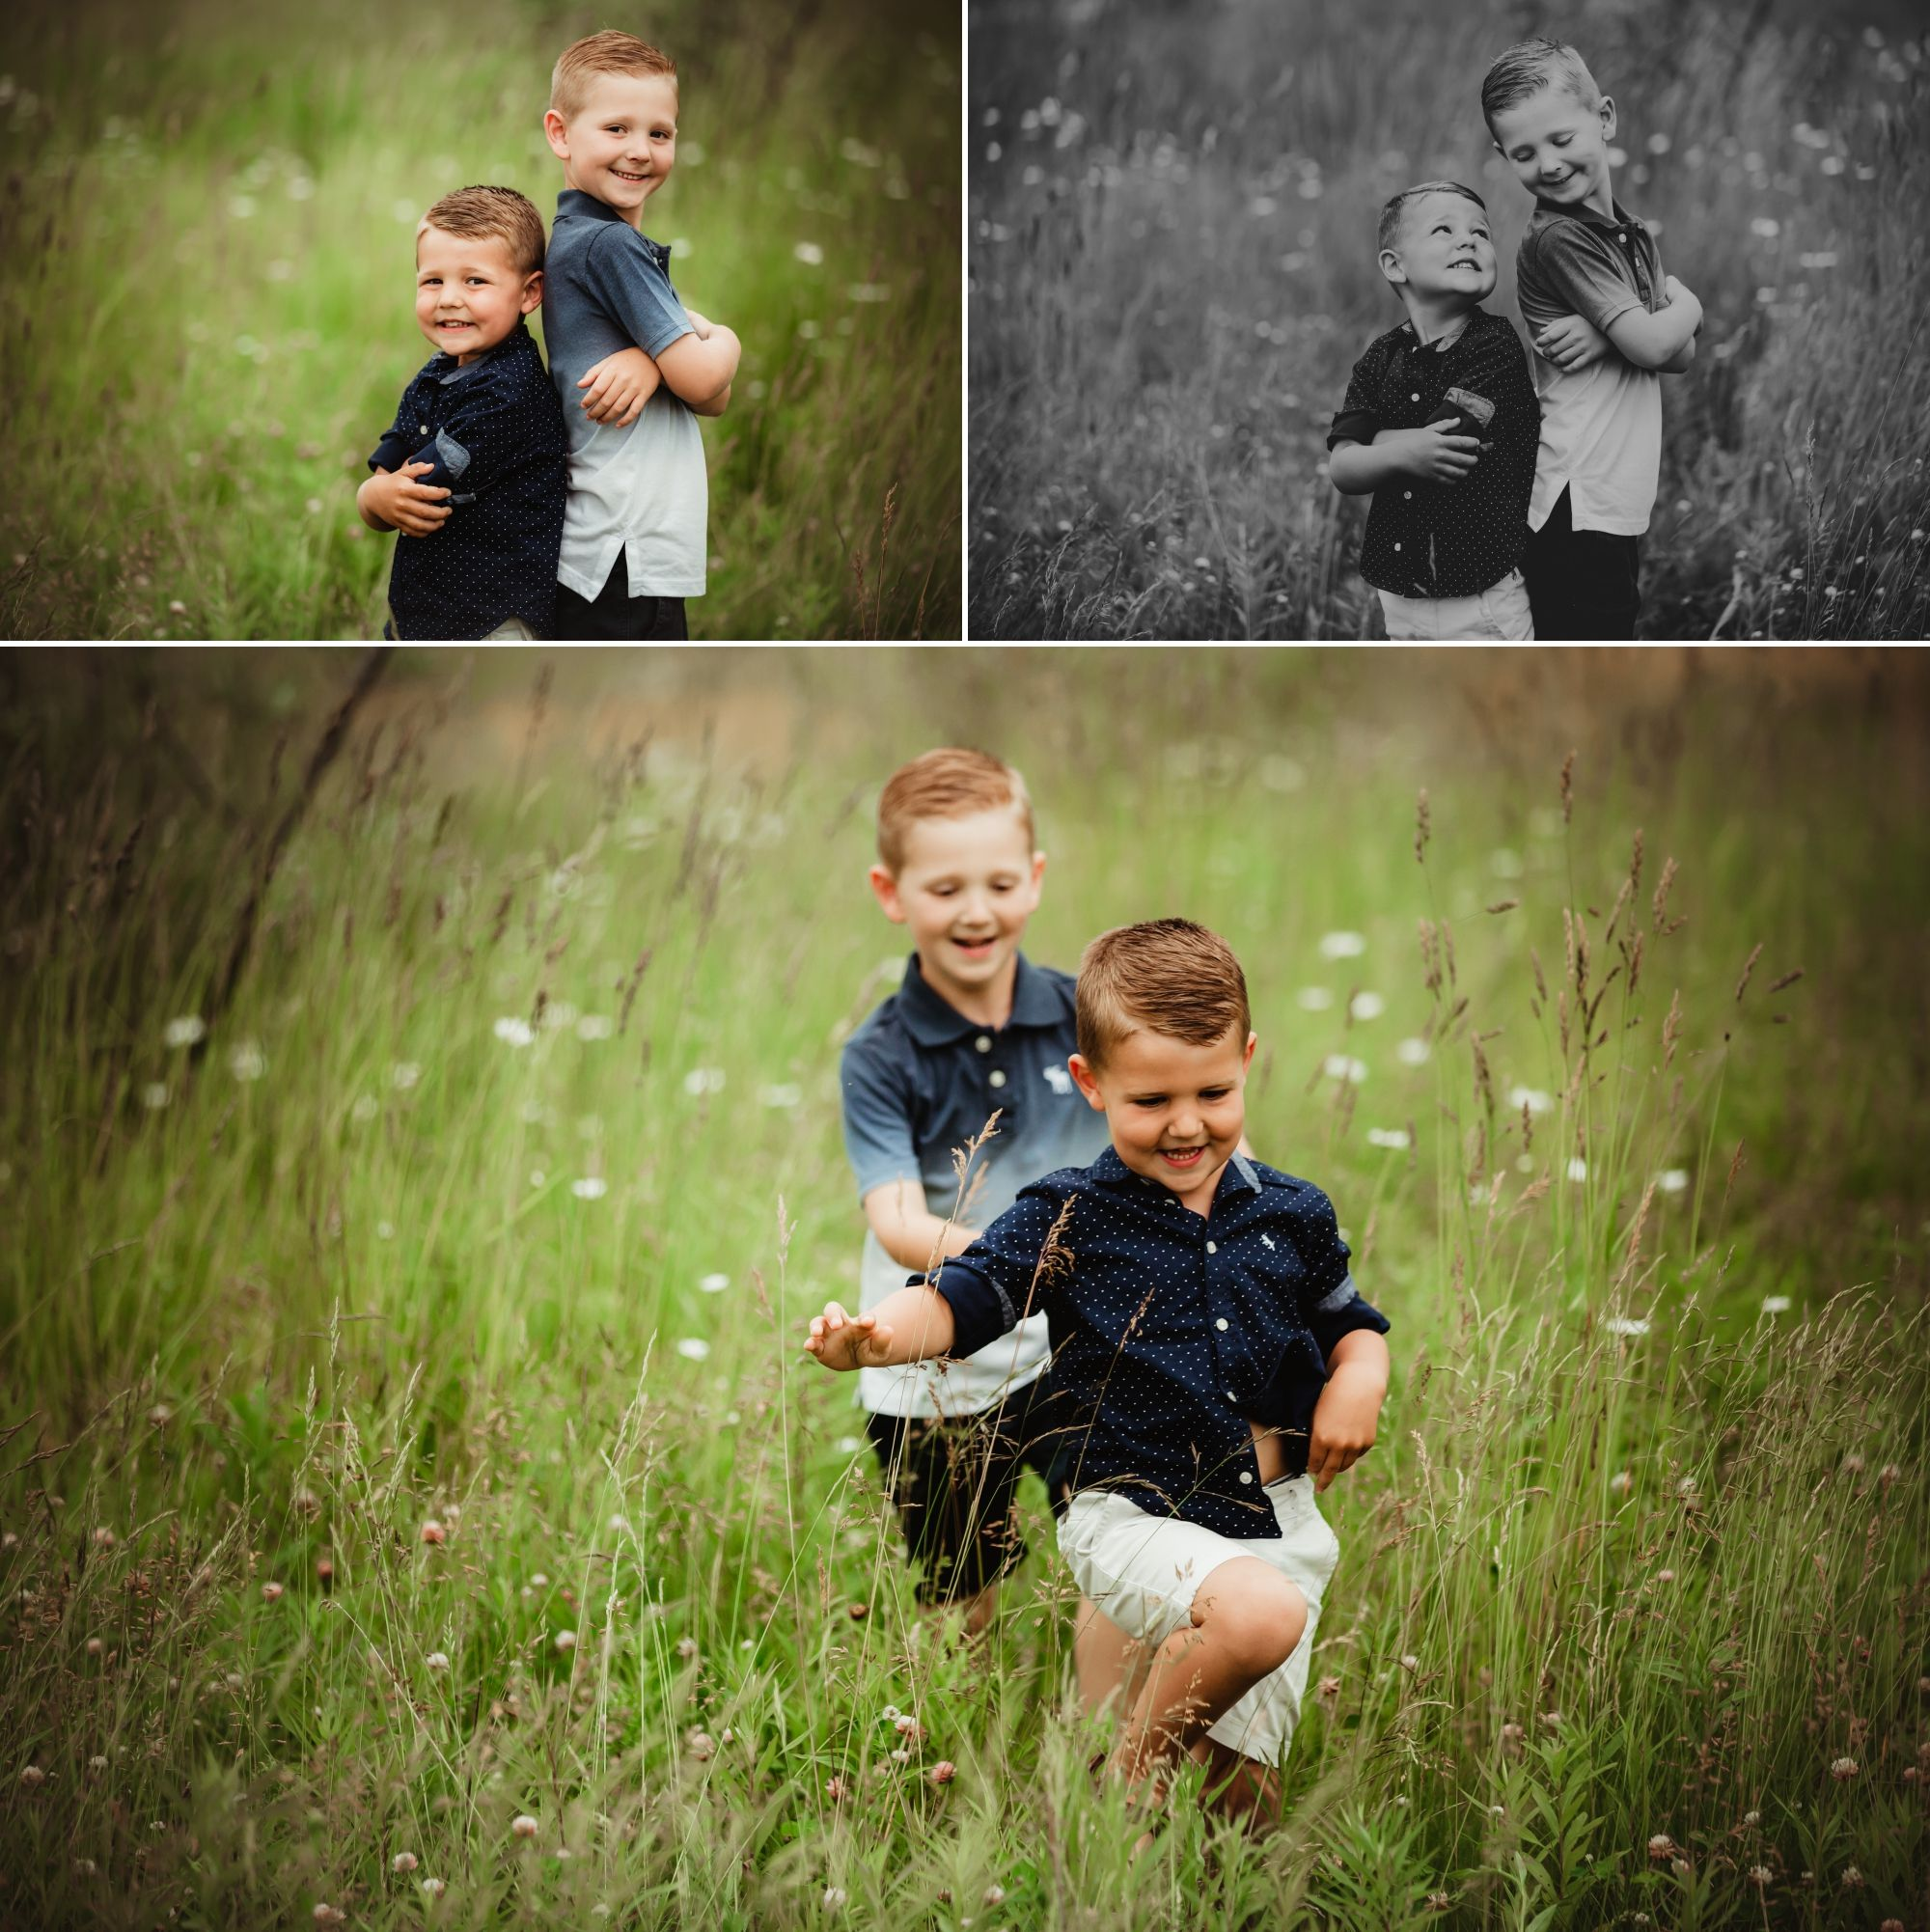 Photos of two young brothers back to back and running through a field.